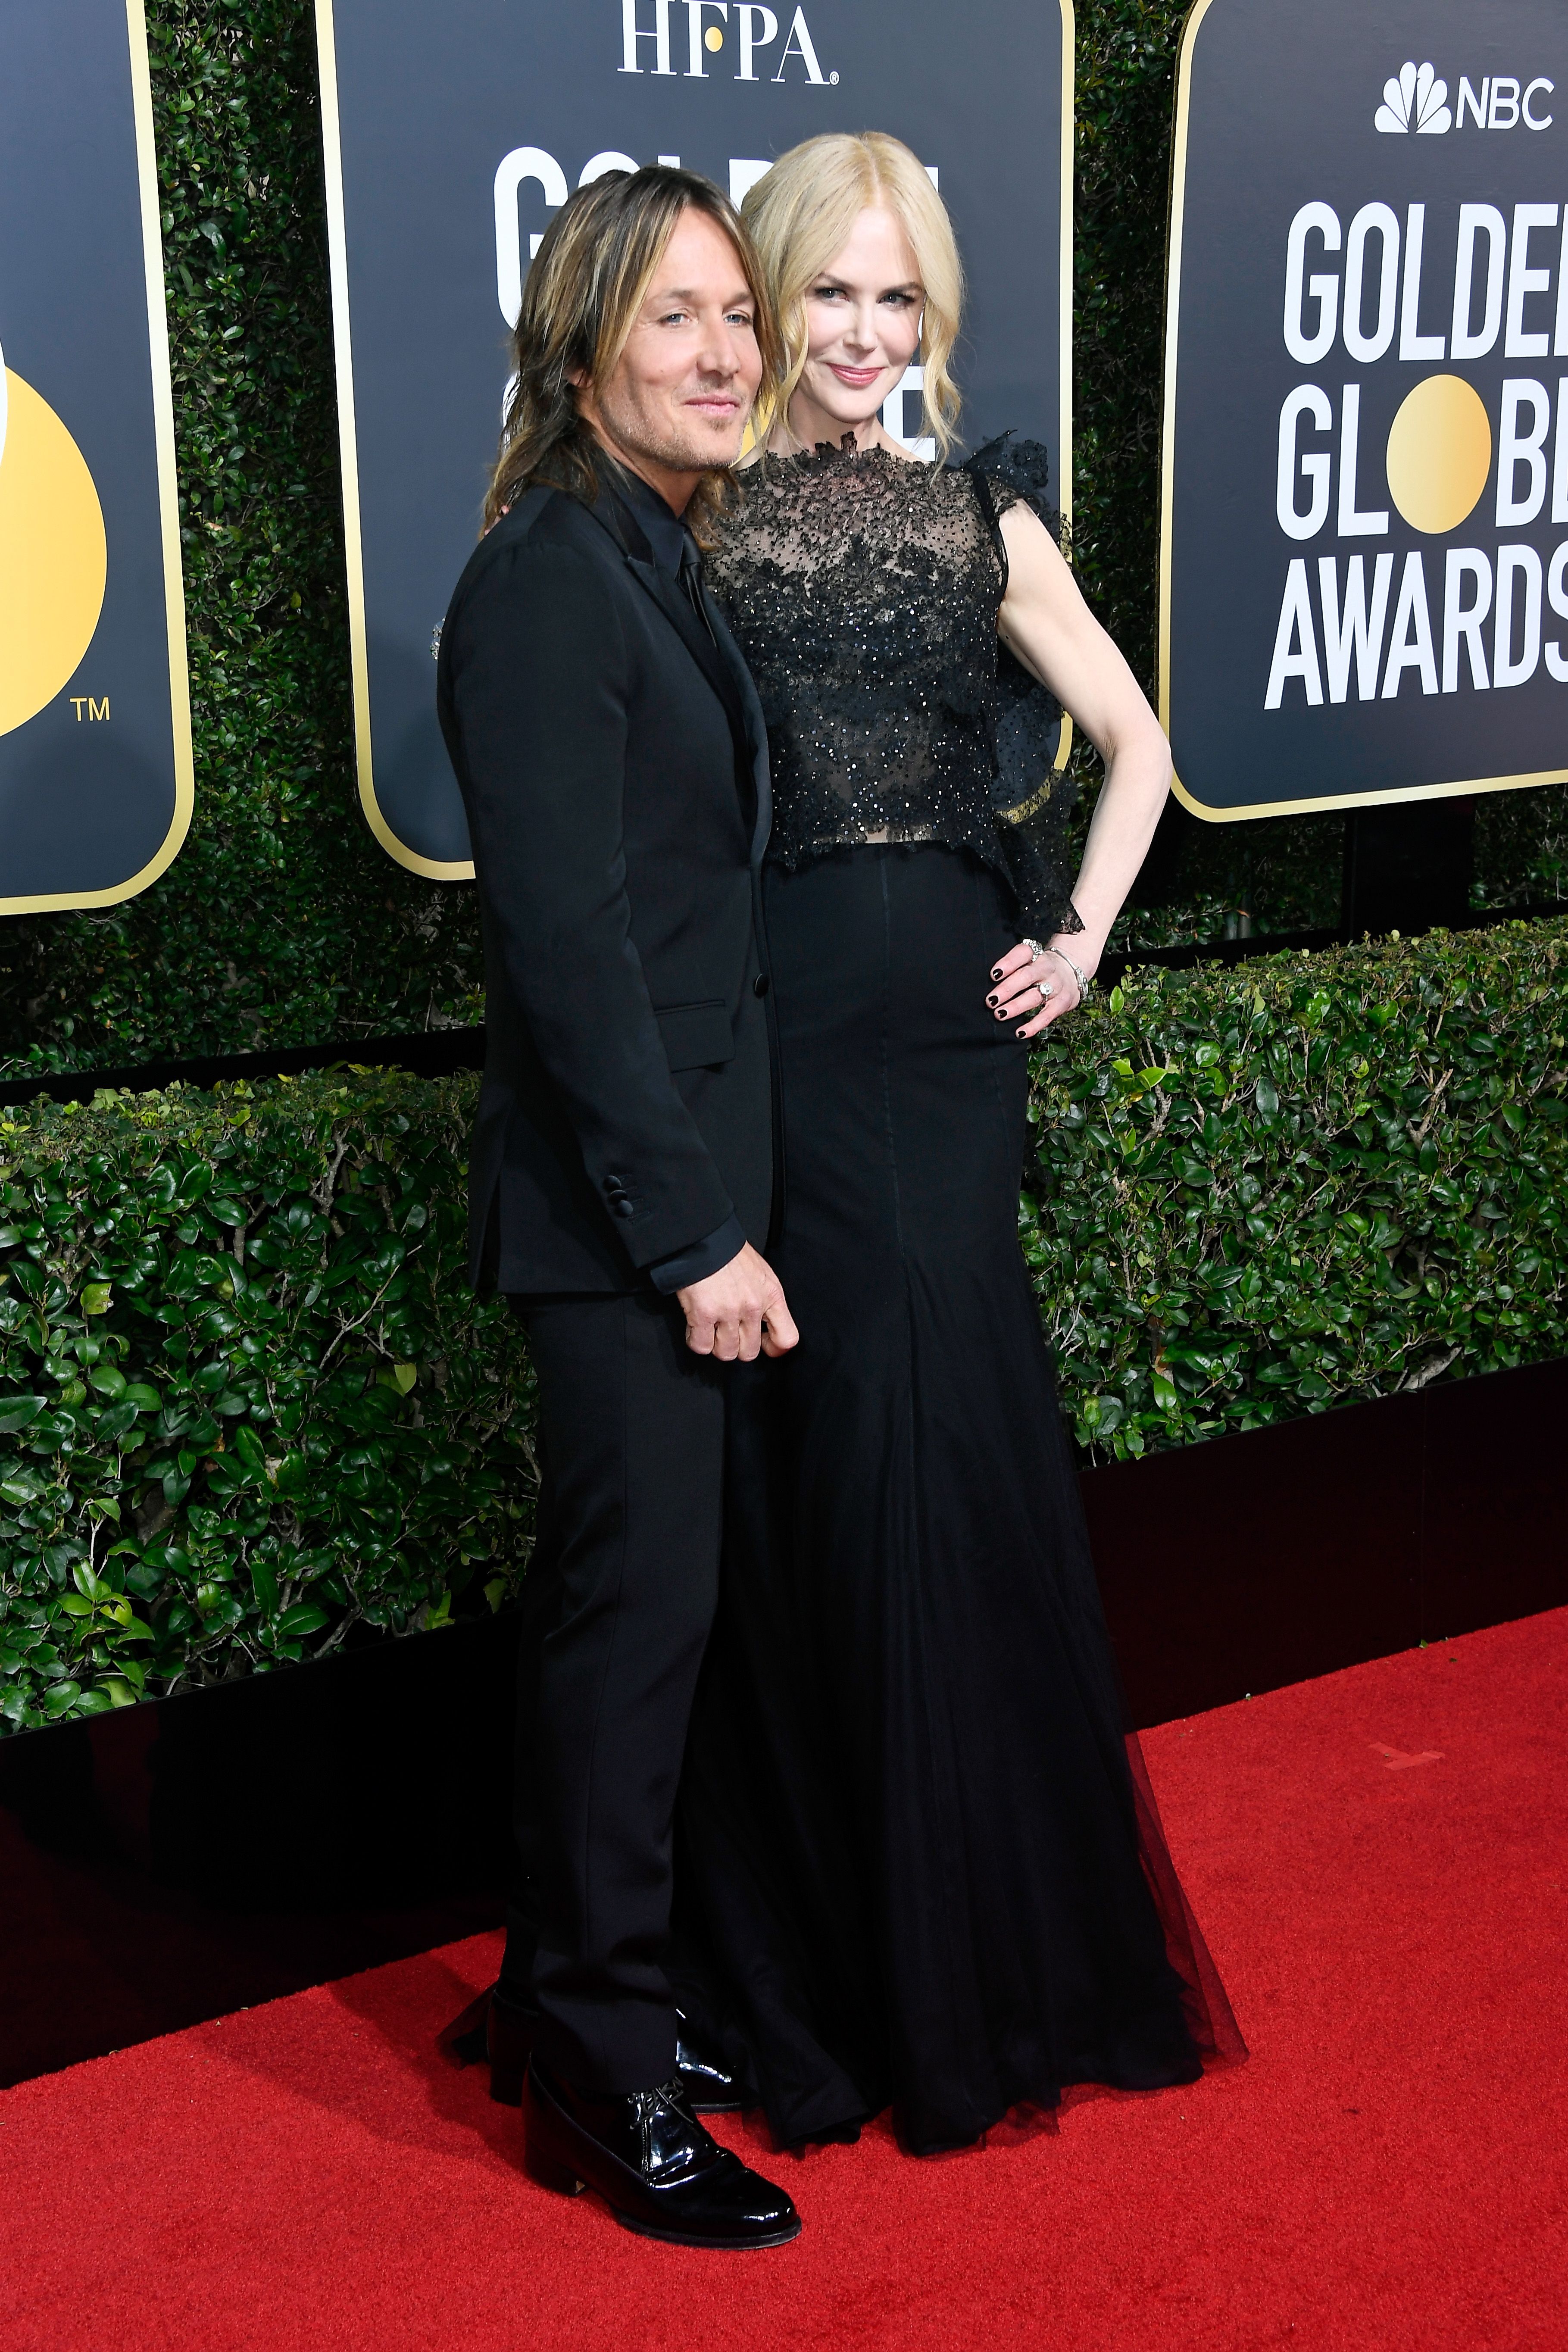 Nicole Kidman and Keith Urban Golden Globes 2018